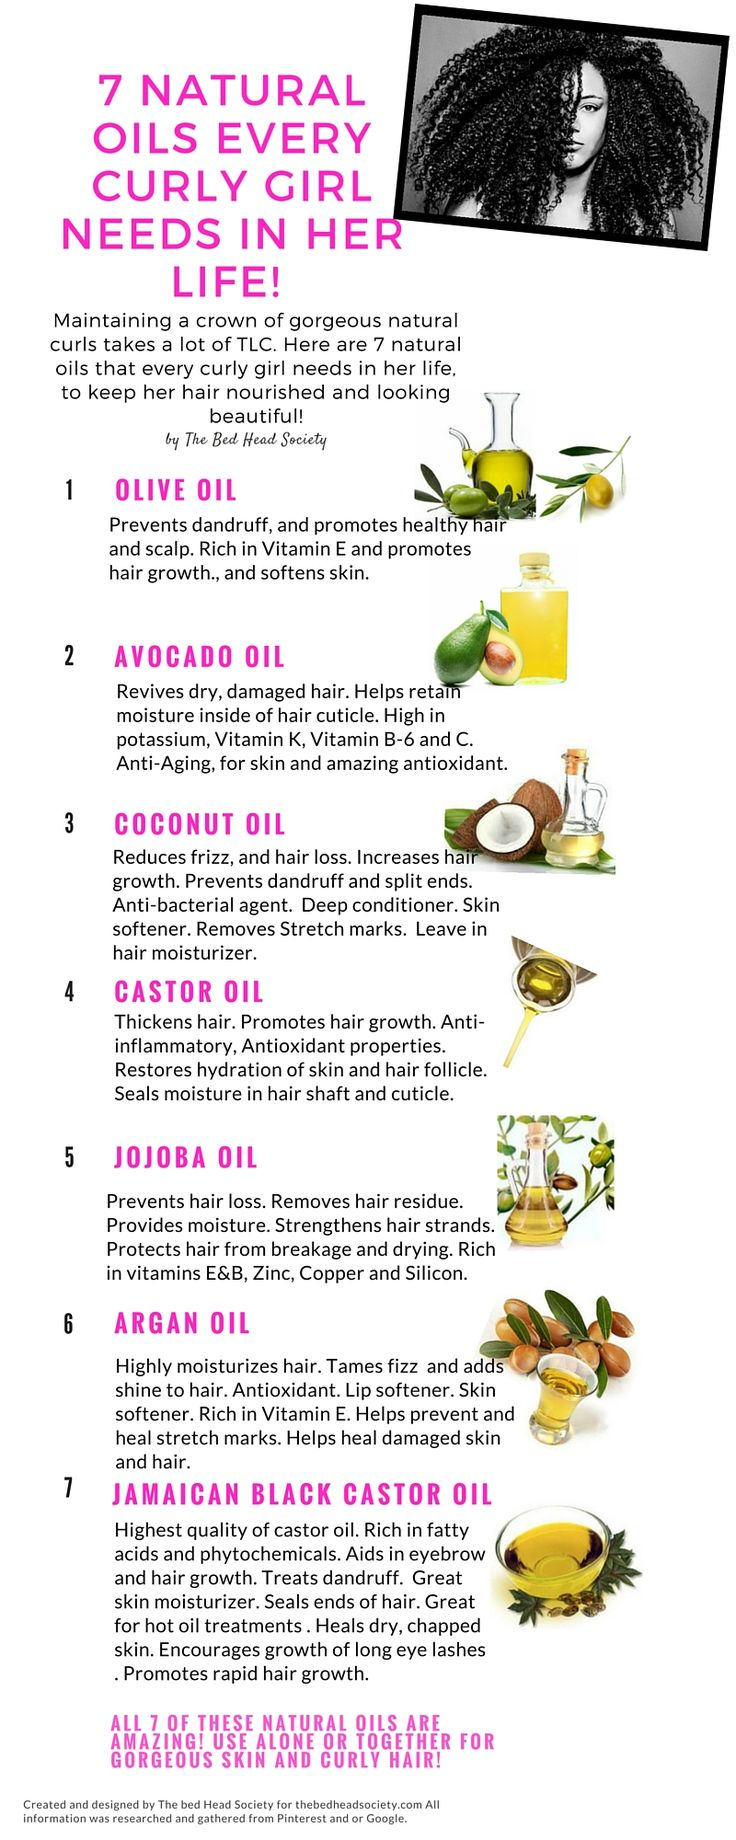 7 Natural Oils Every Curly Girl Needs In Her Life Now